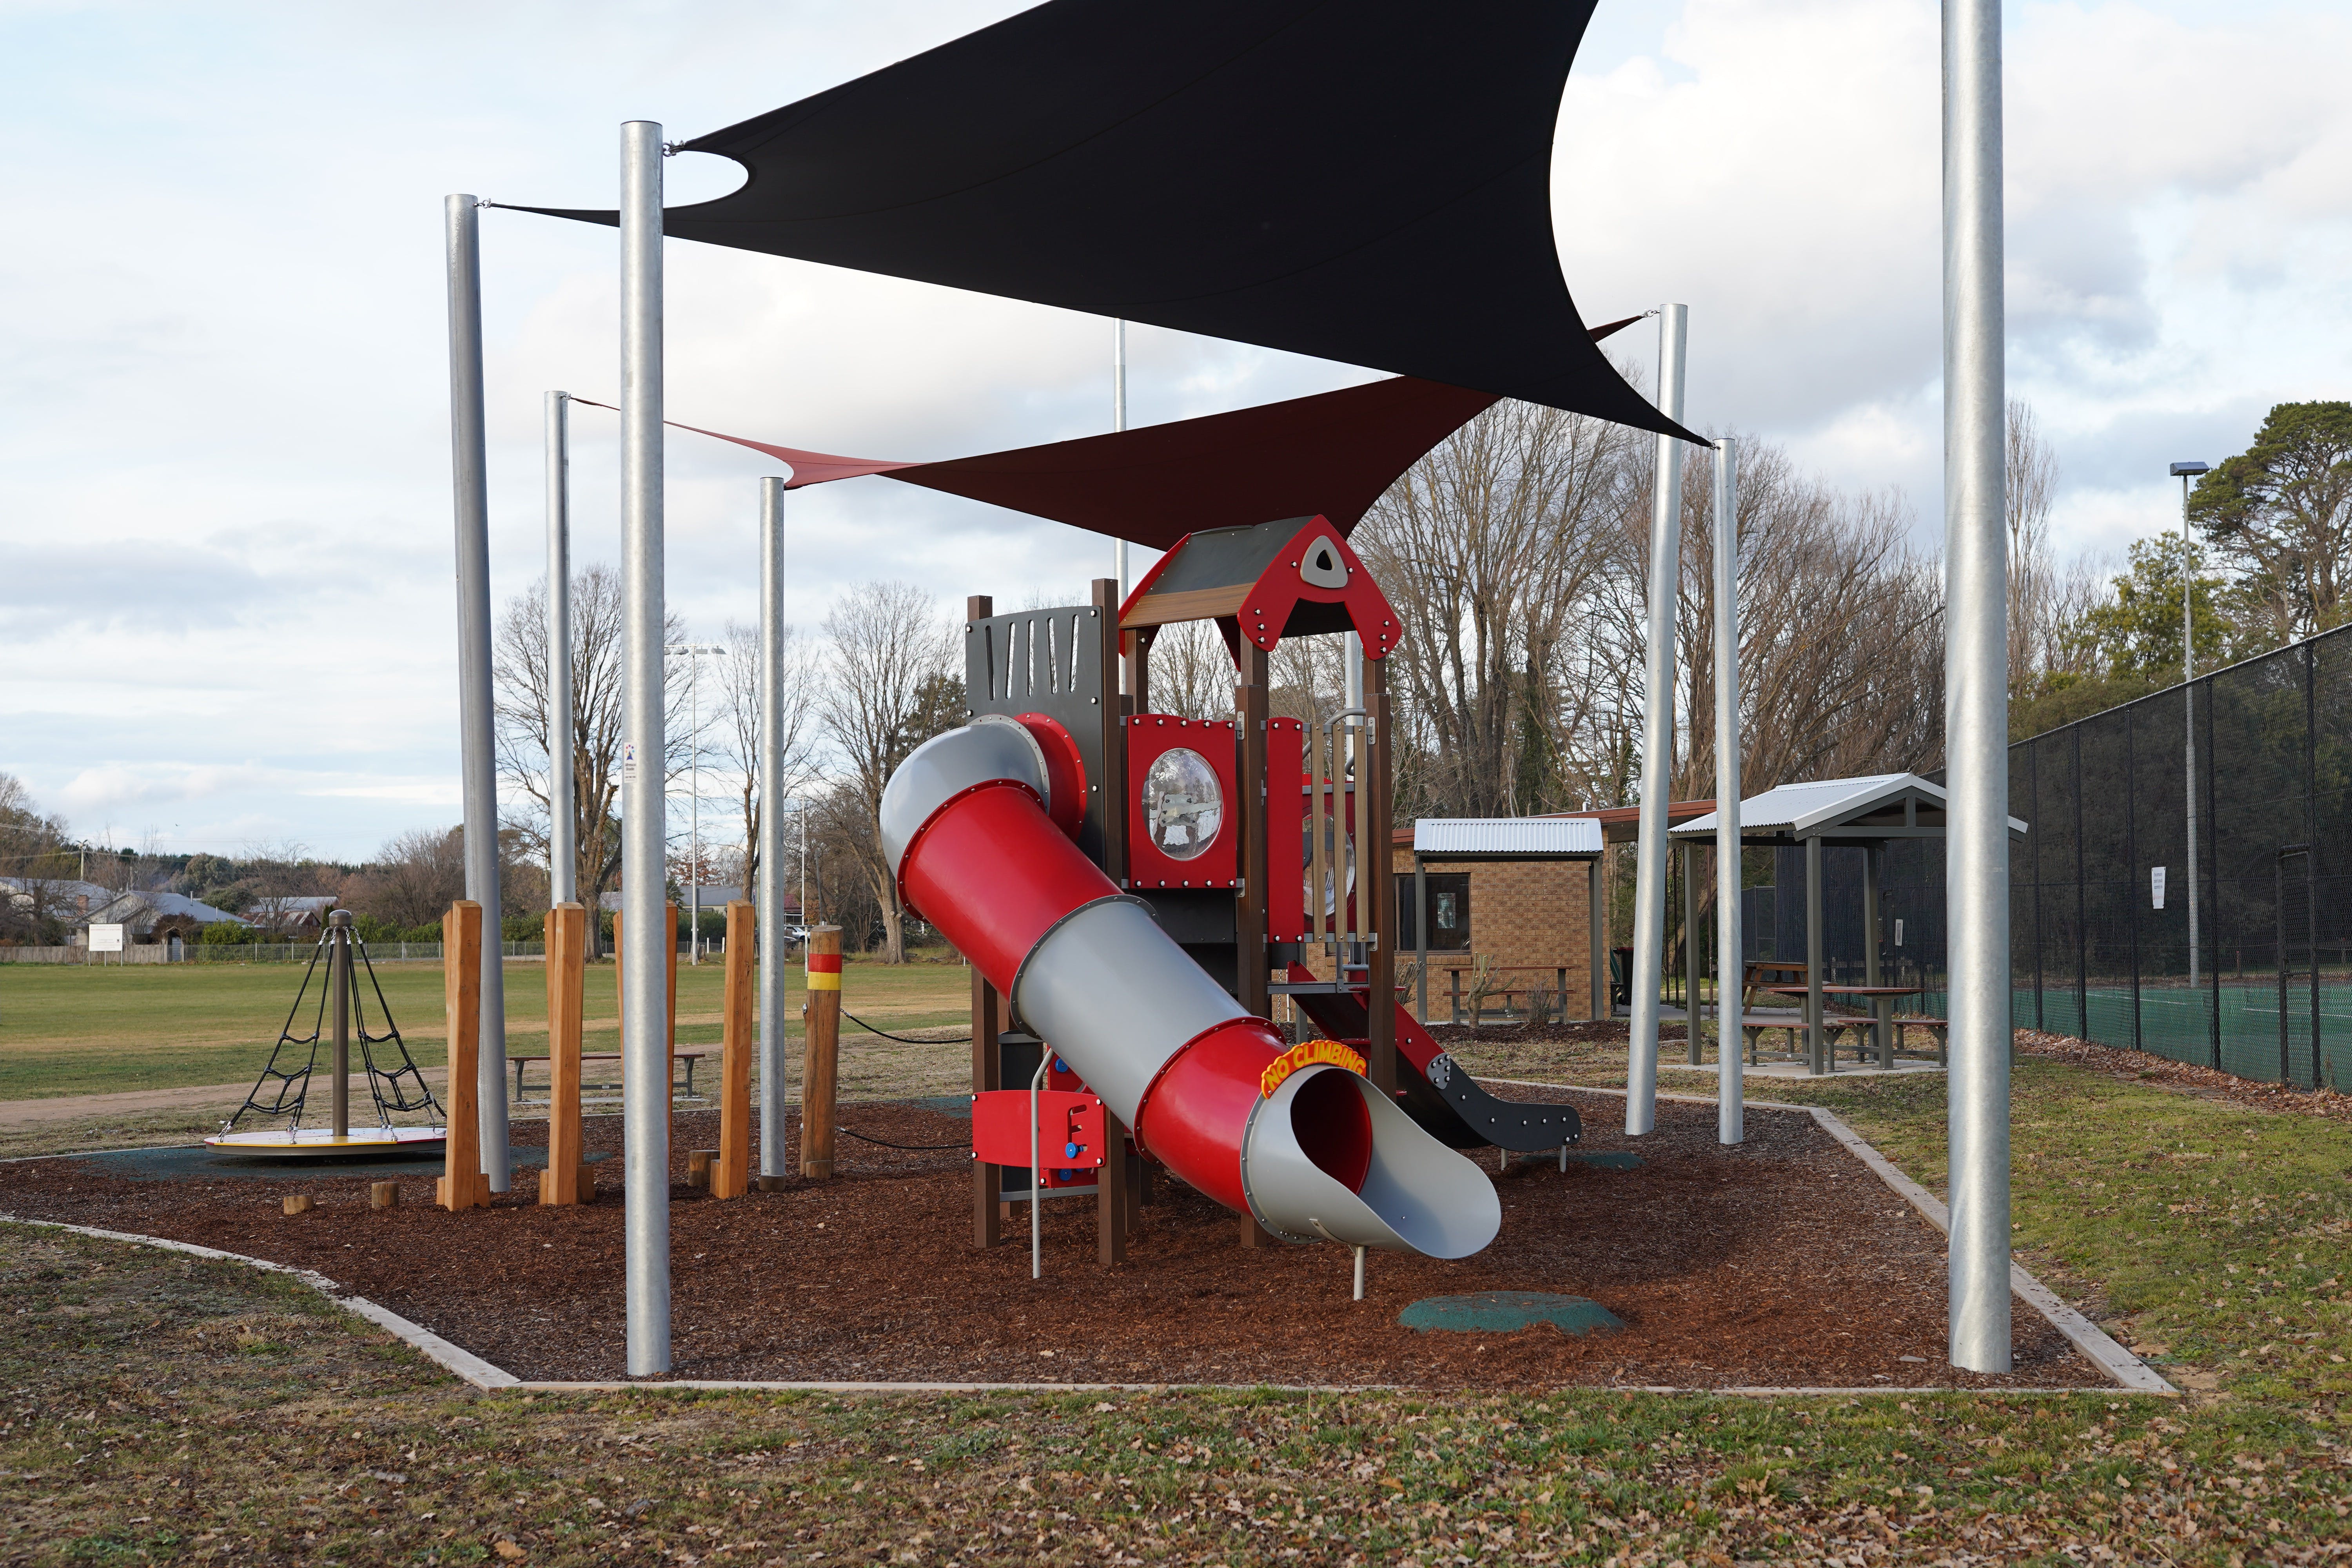 Braidwood Recreation Grounds and Playground - Accommodation Batemans Bay